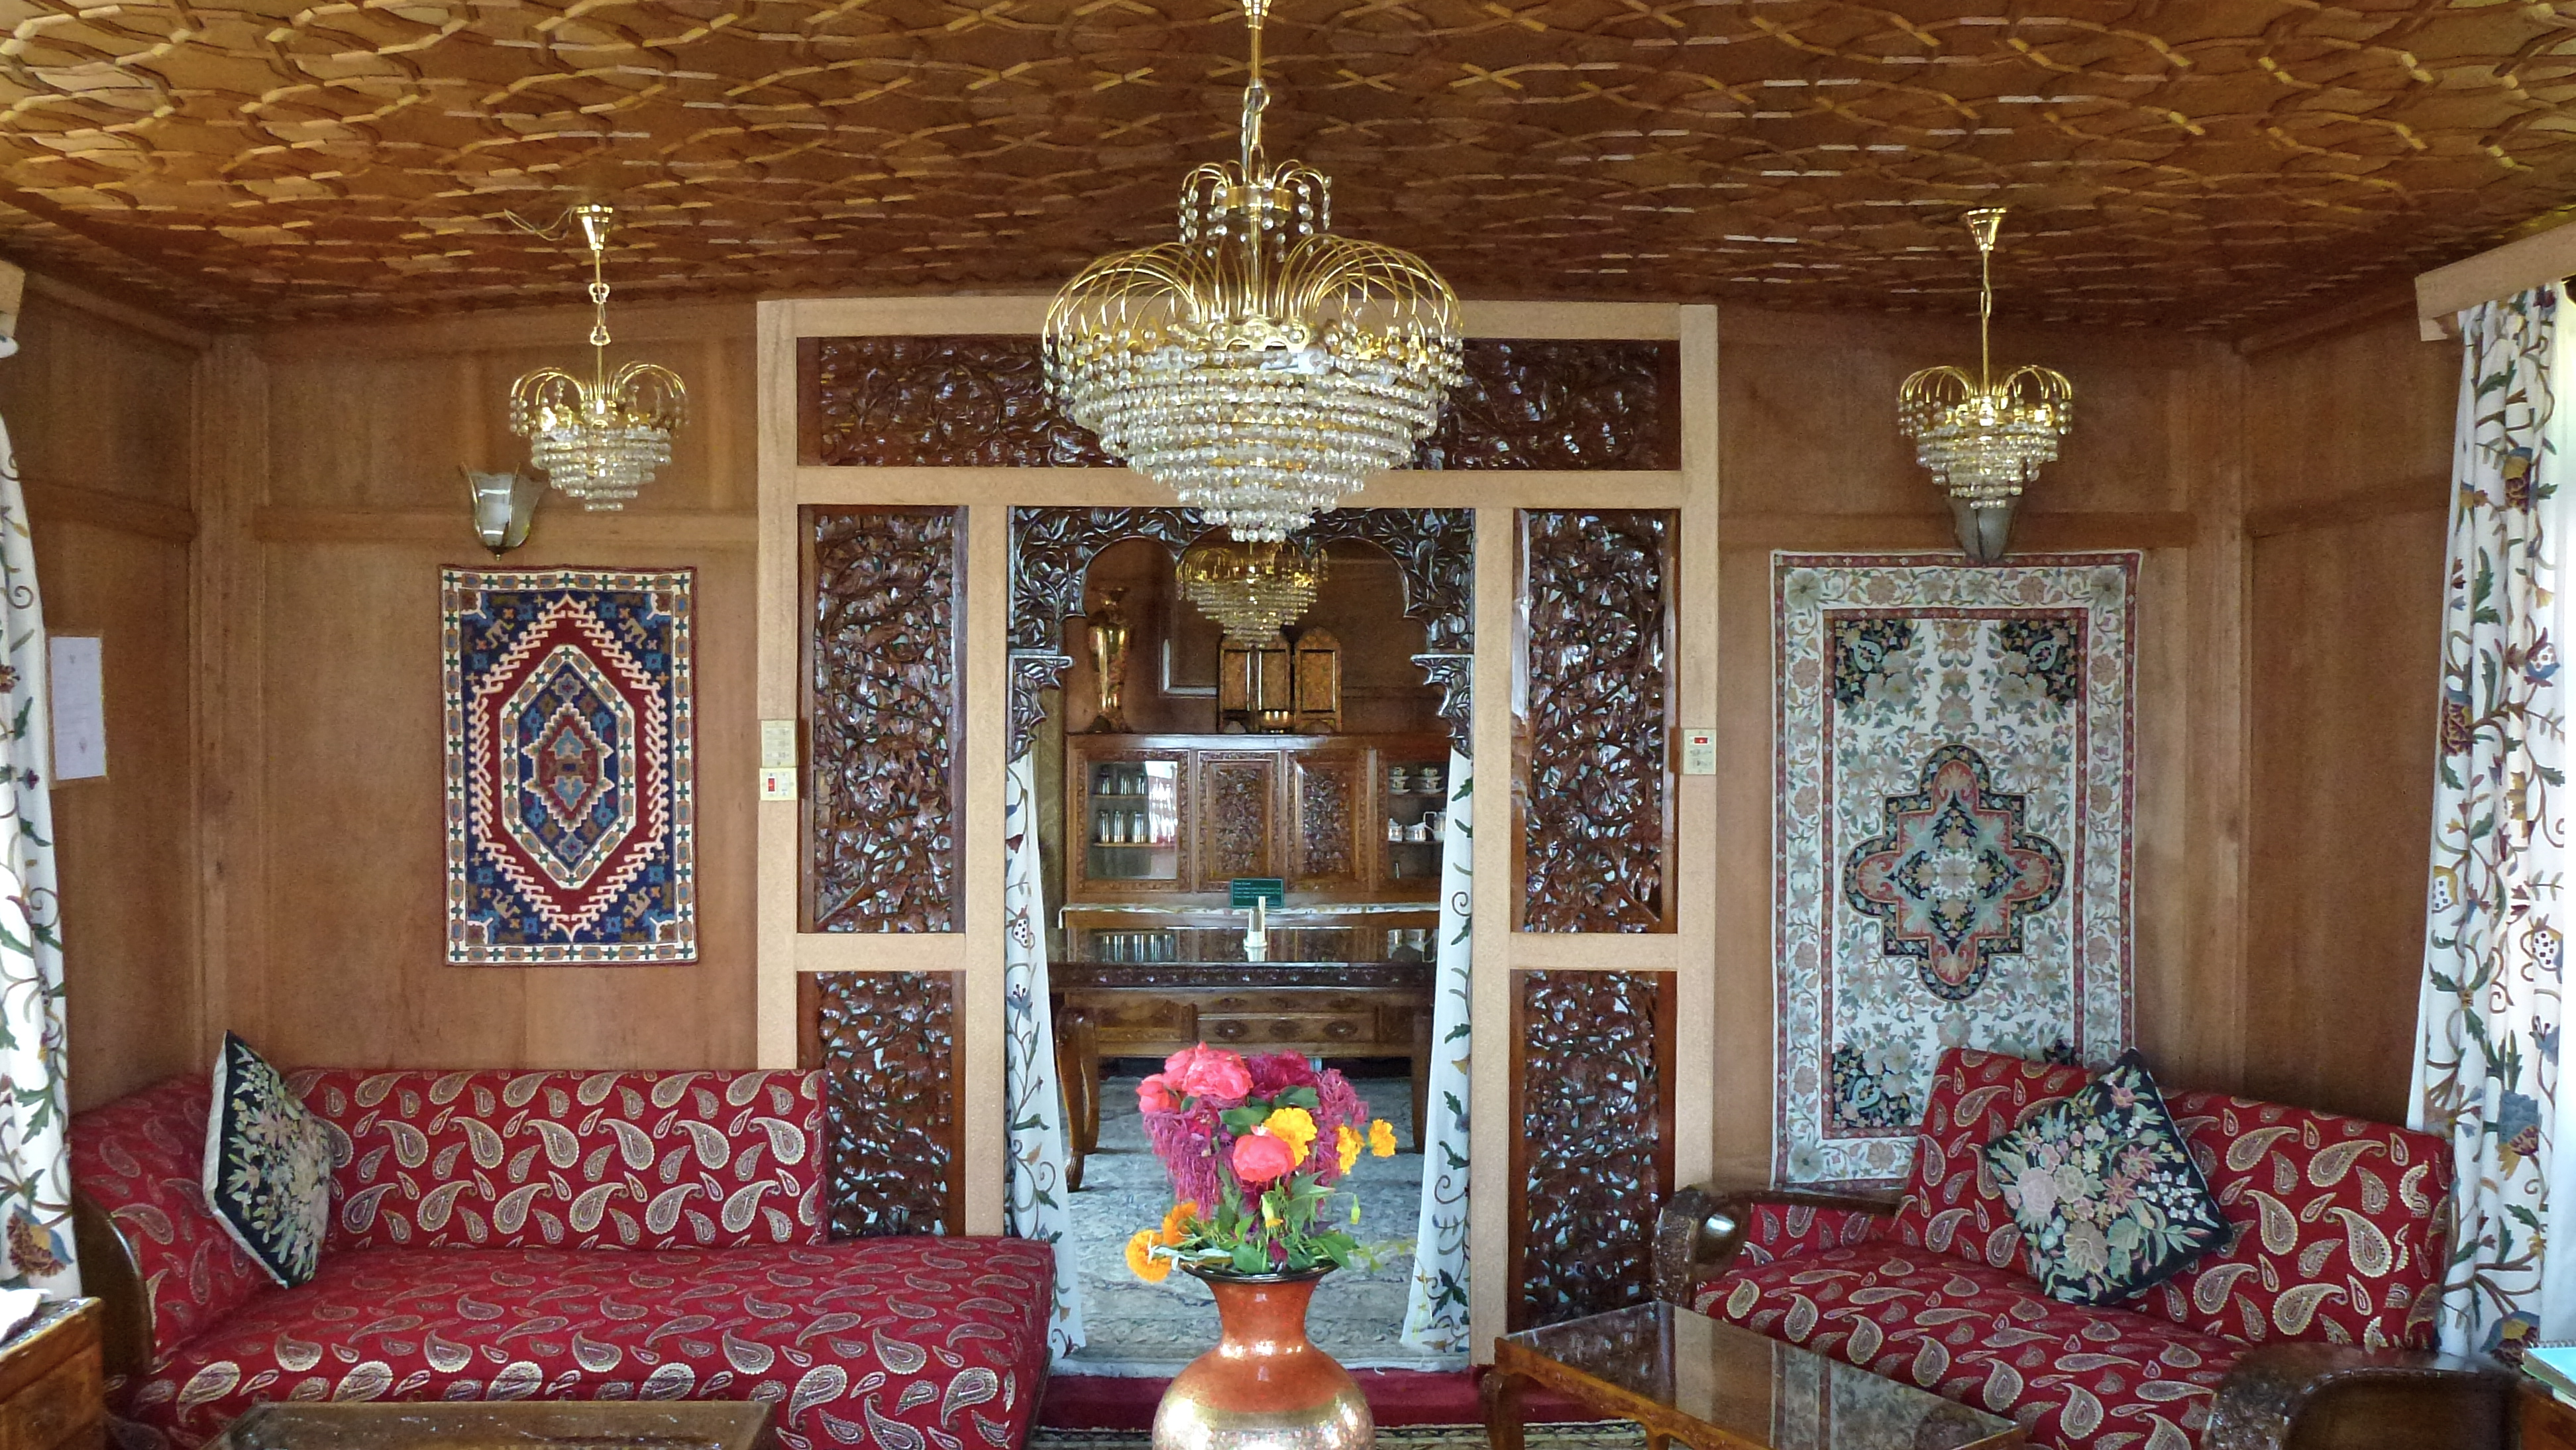 The lounge and dining room were an eclectic mix of various crafts woven rugs and fabrics laquered carved woodwork papier mache laquerwork and kashmiri